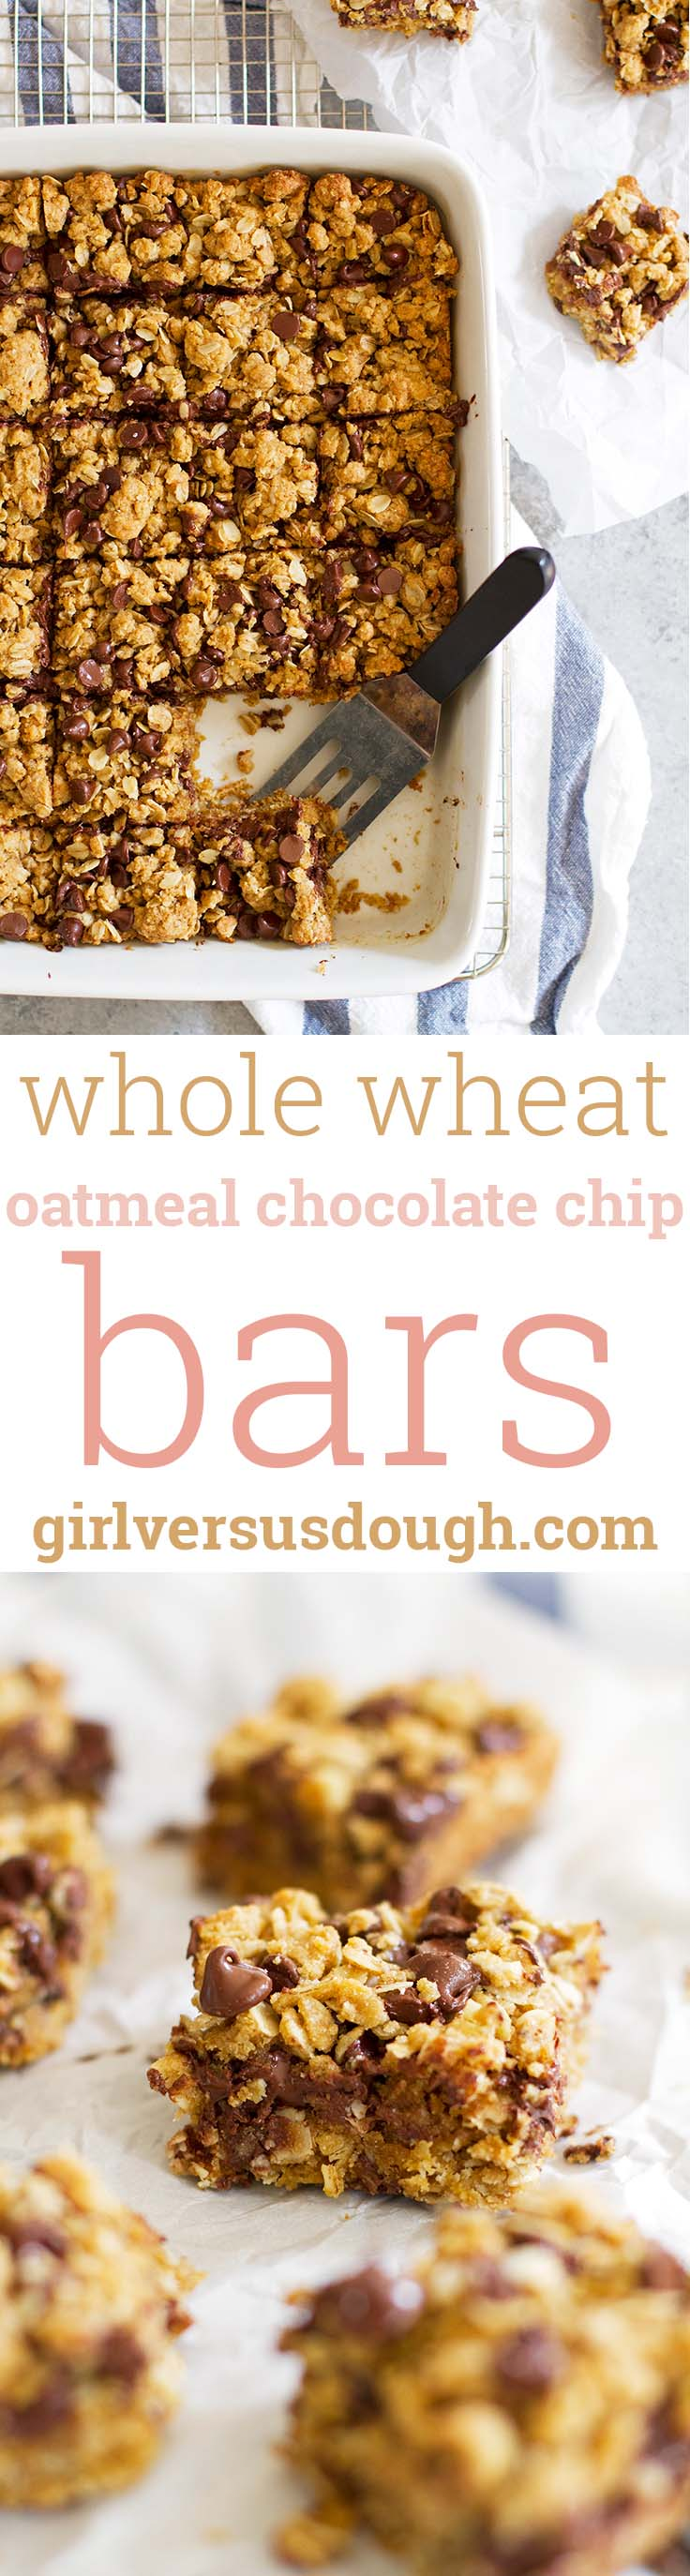 Whole Wheat Oatmeal Chocolate Chip Cookie Bars -- Delightful soft and chewy bites of oatmeal and melty chocolate with a little virtue from white whole wheat flour. girlversusdough.com @girlversusdough